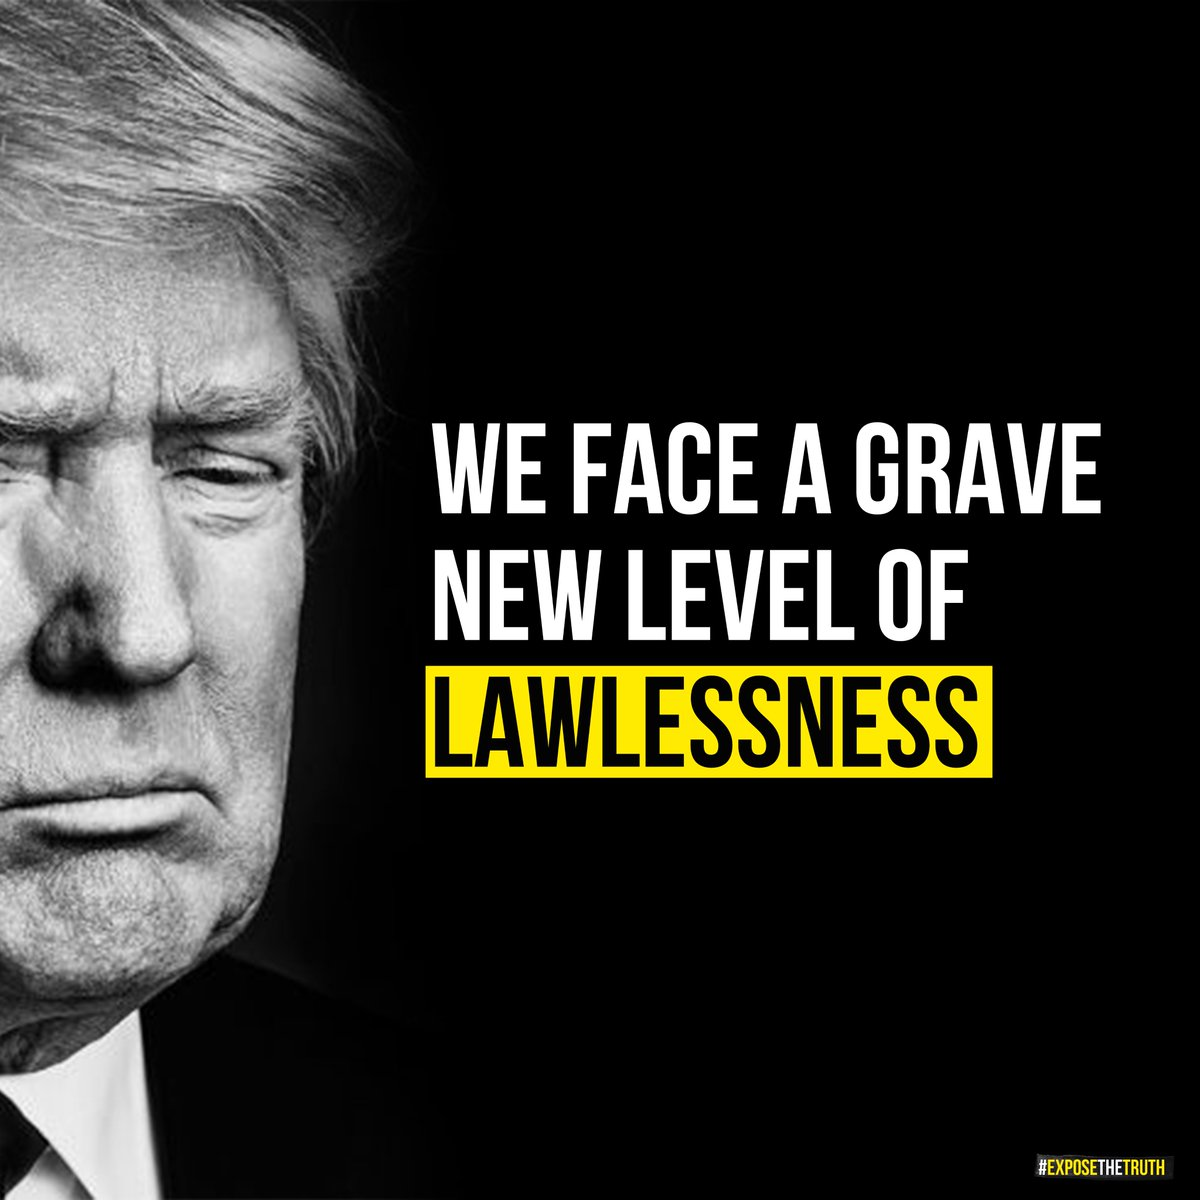 The assumed possible inaction of the Senate is not a reason for the House to ignore its constitutional obligation. Remaining ignorant of the lawlessness of this President and choosing not to hold him accountable would have severe consequences for generations to come.